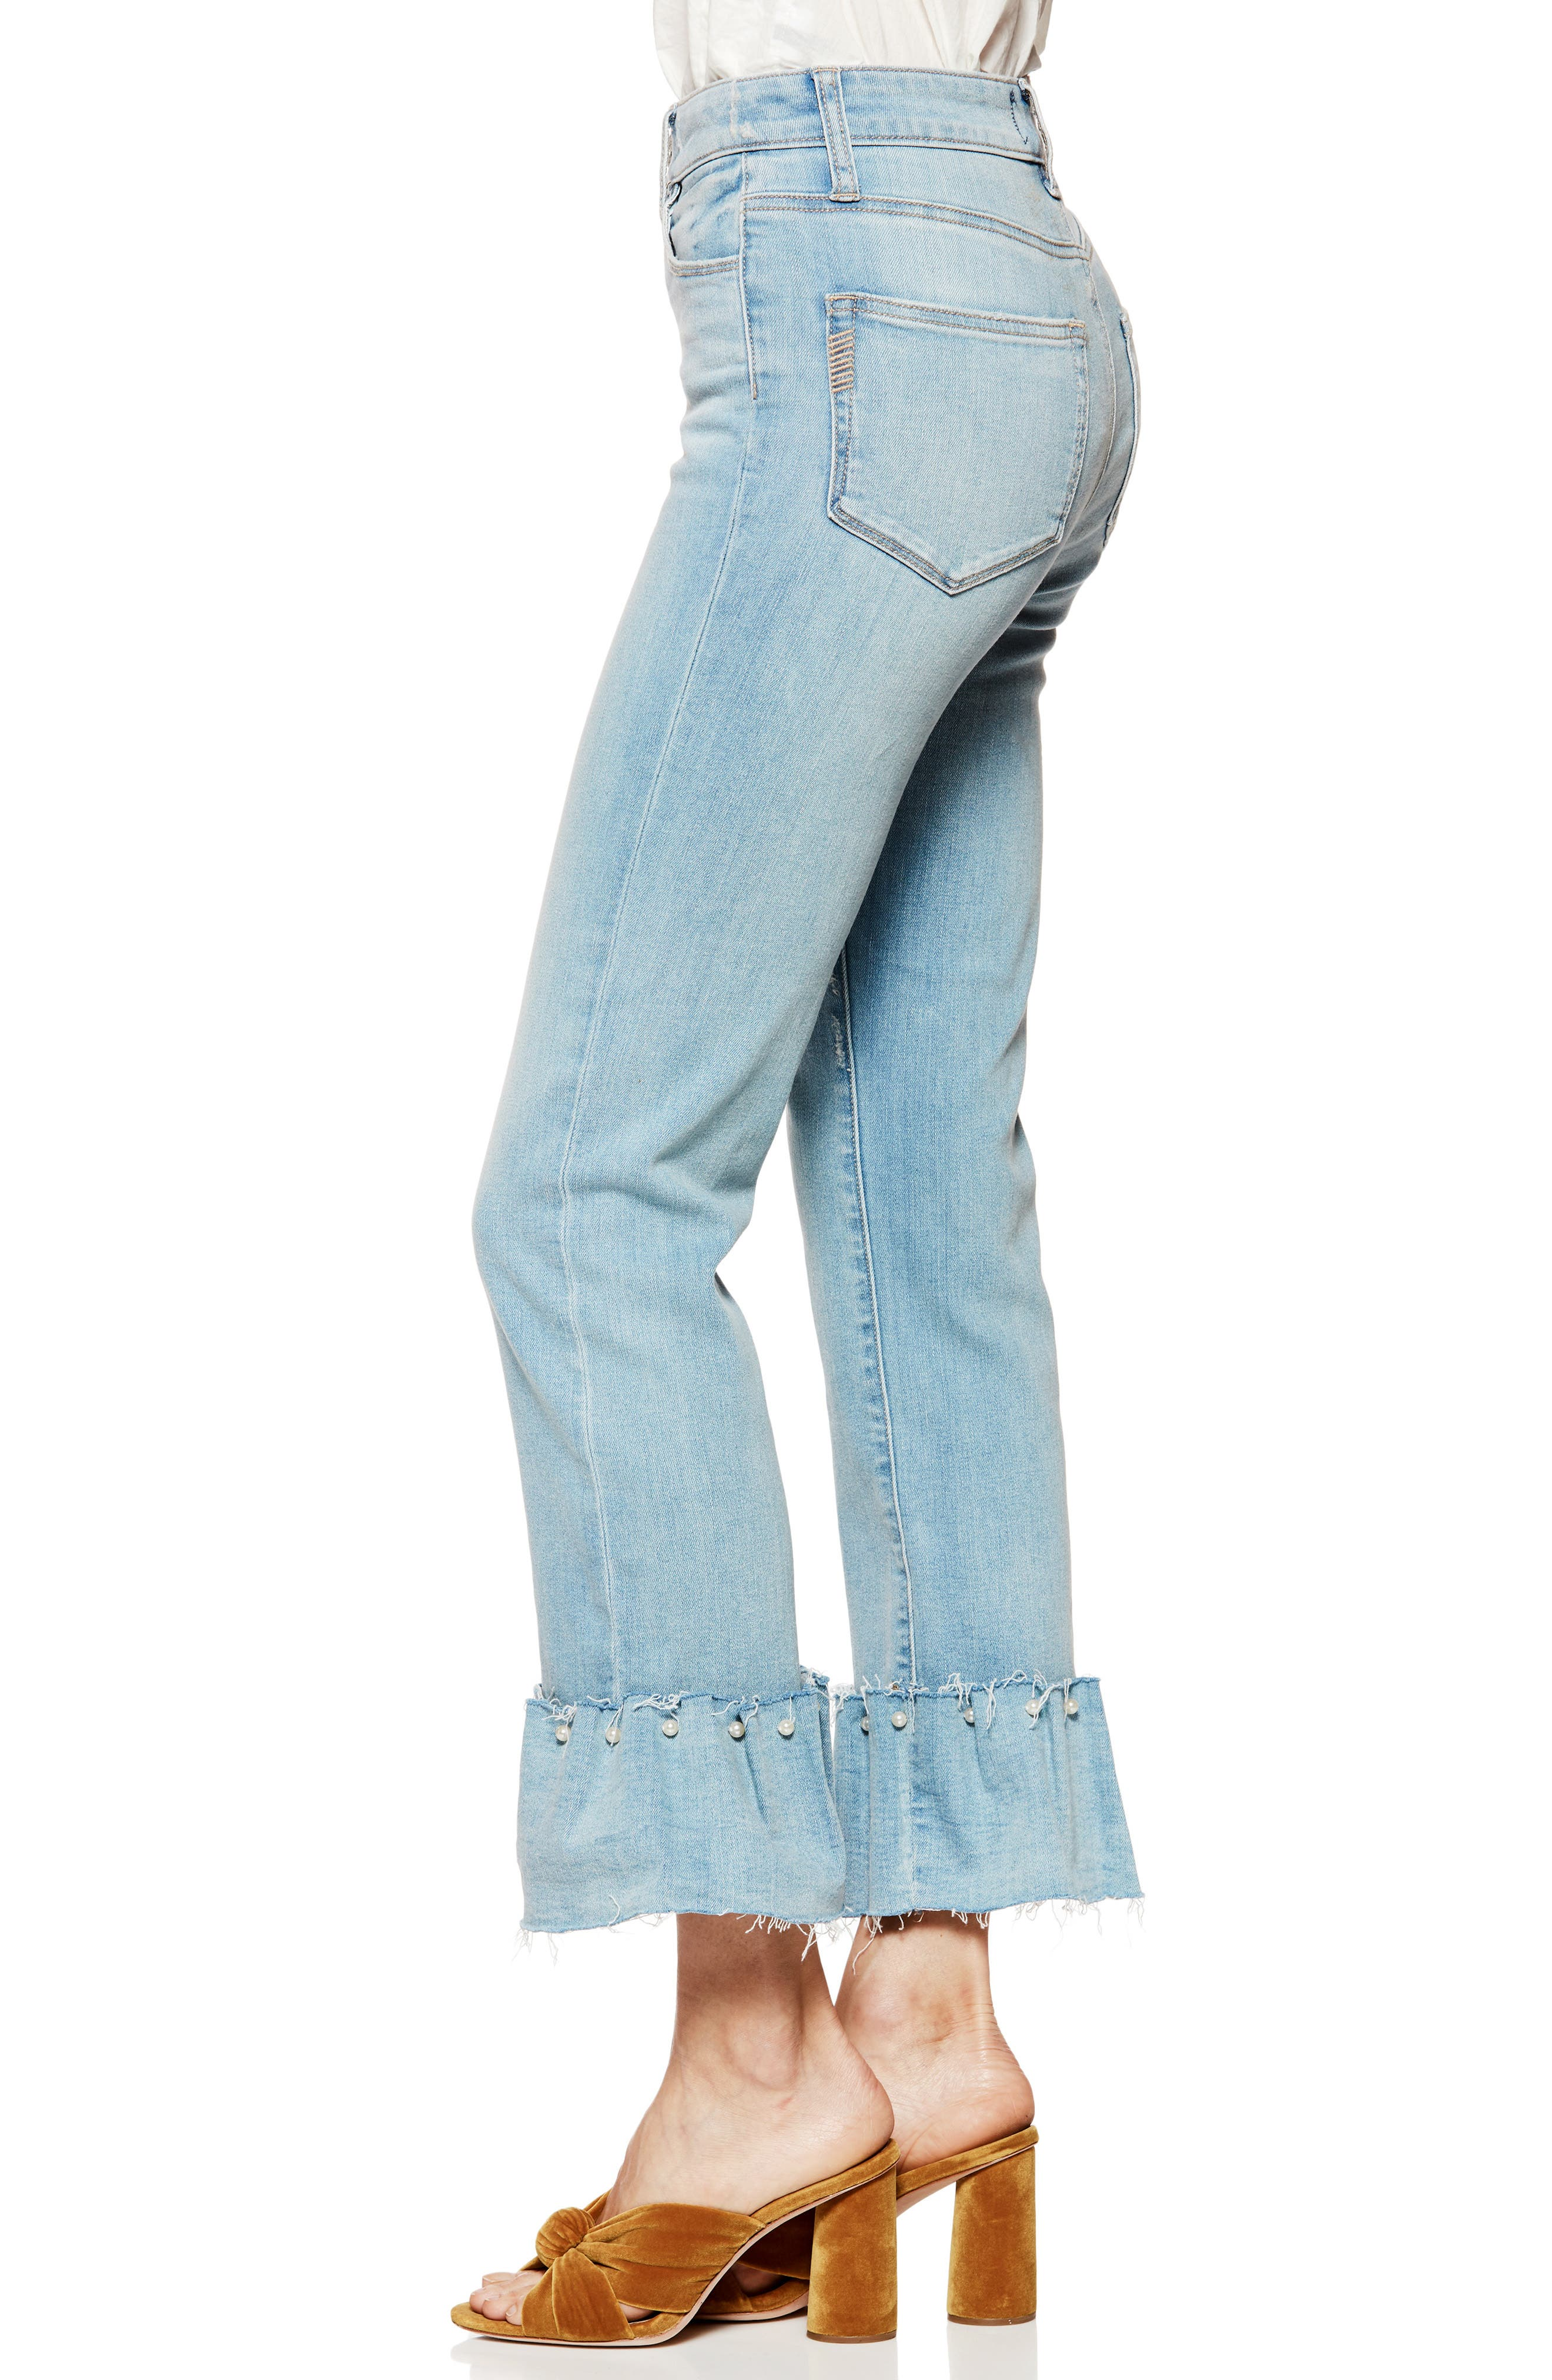 Transcend Vintage - Hoxton Embellished Ruffle High Waist Jeans,                             Alternate thumbnail 3, color,                             PALMS